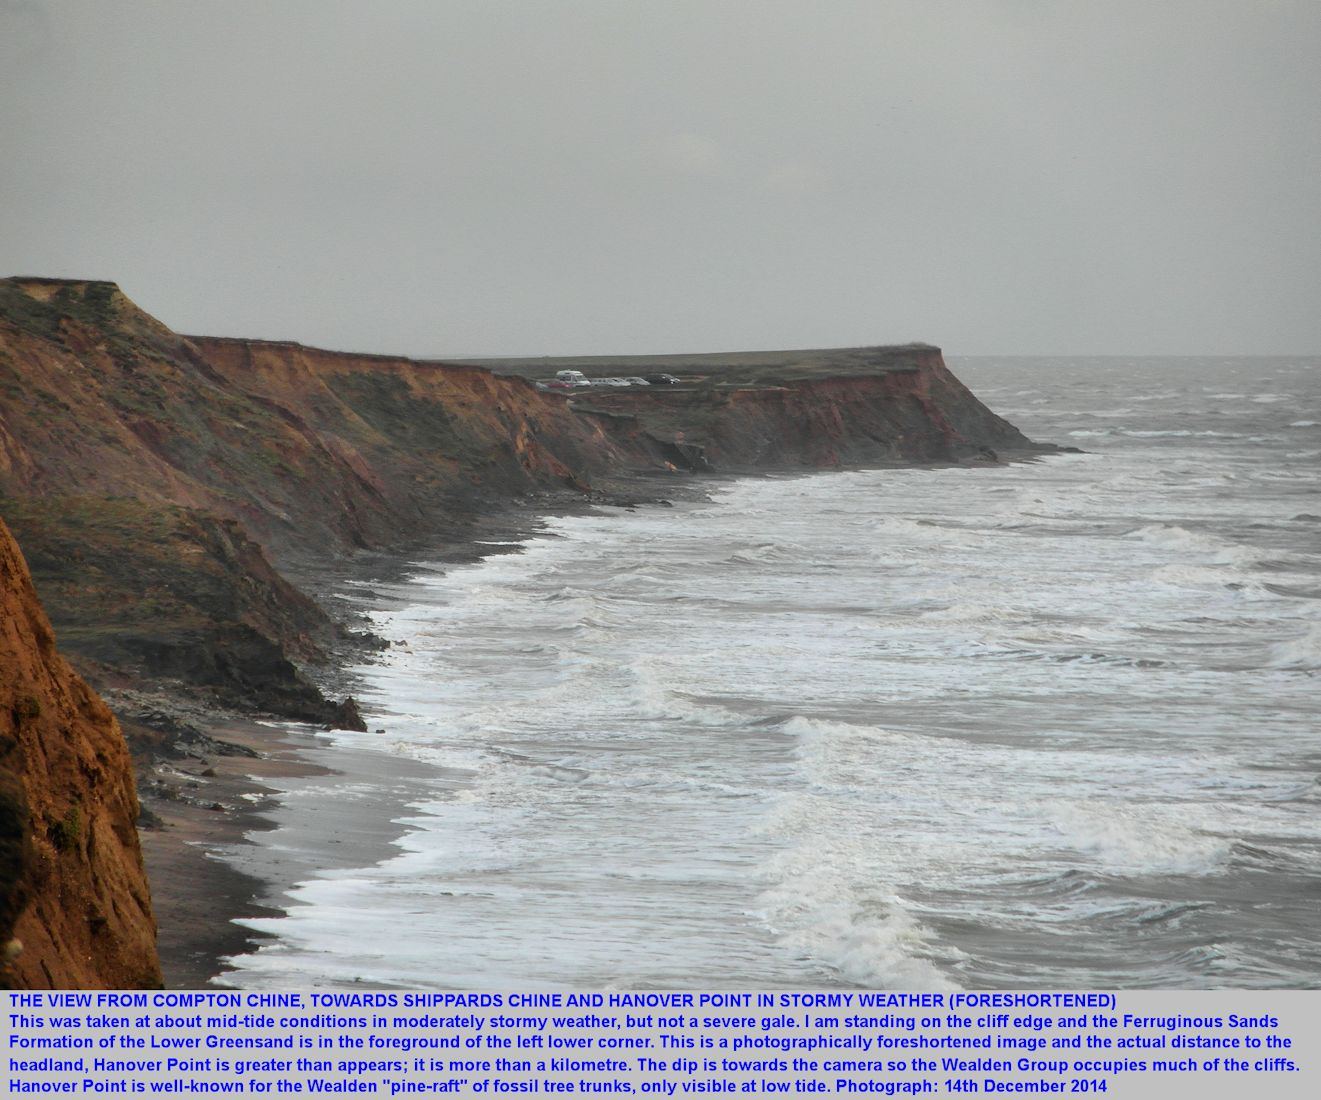 A foreshortened view of Shippards Chine and Hanover Point southeast from the cliff top at Compton Chine, Isle of Wight, 14th December 2014